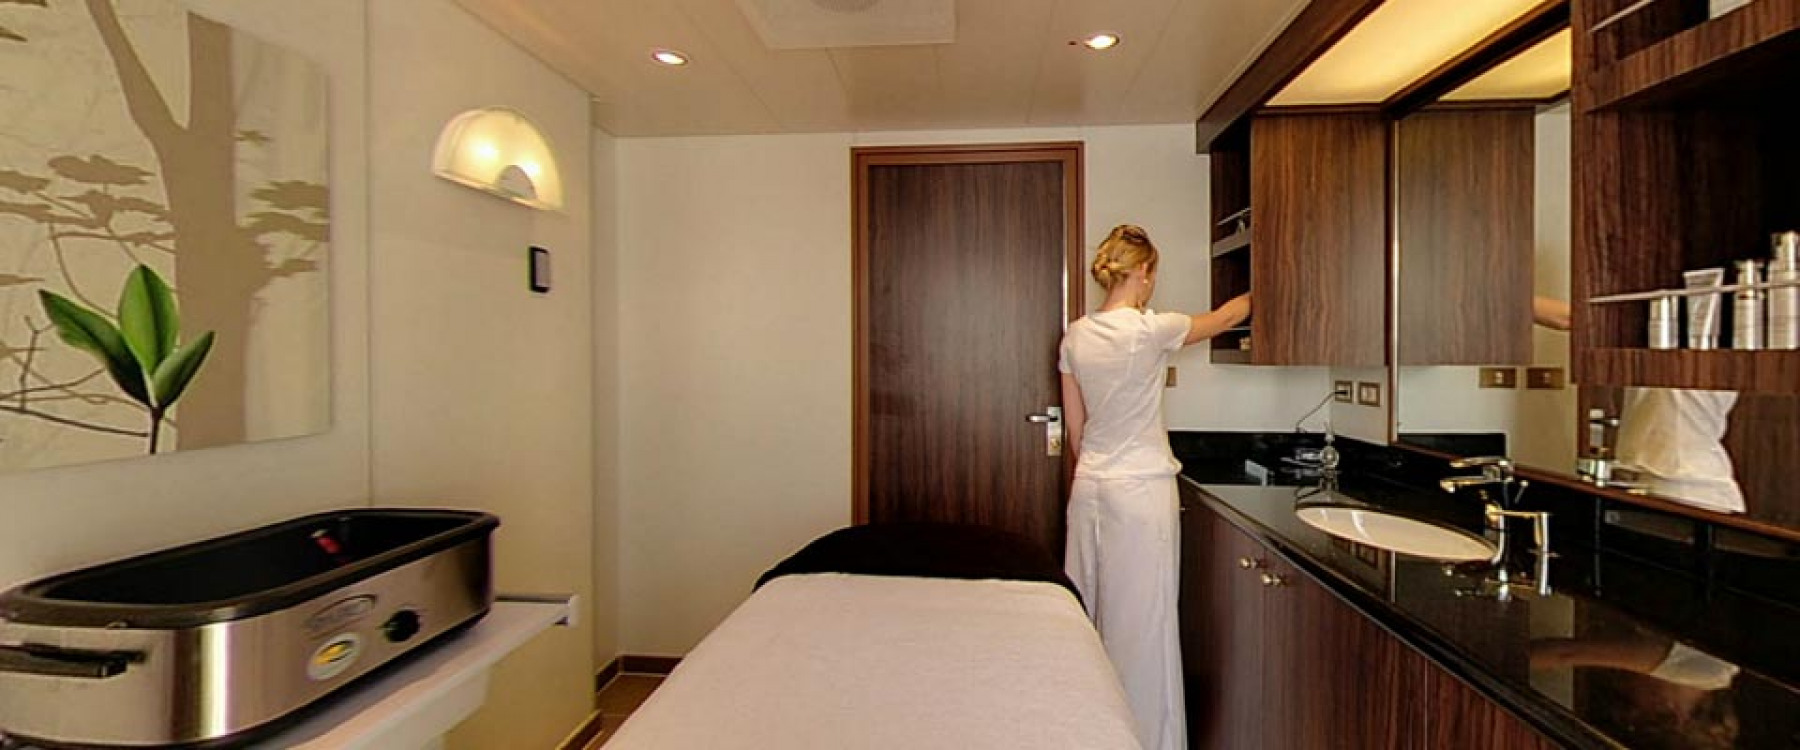 P&O Cruises Azura Interior Spa Treatment Rooms.jpg